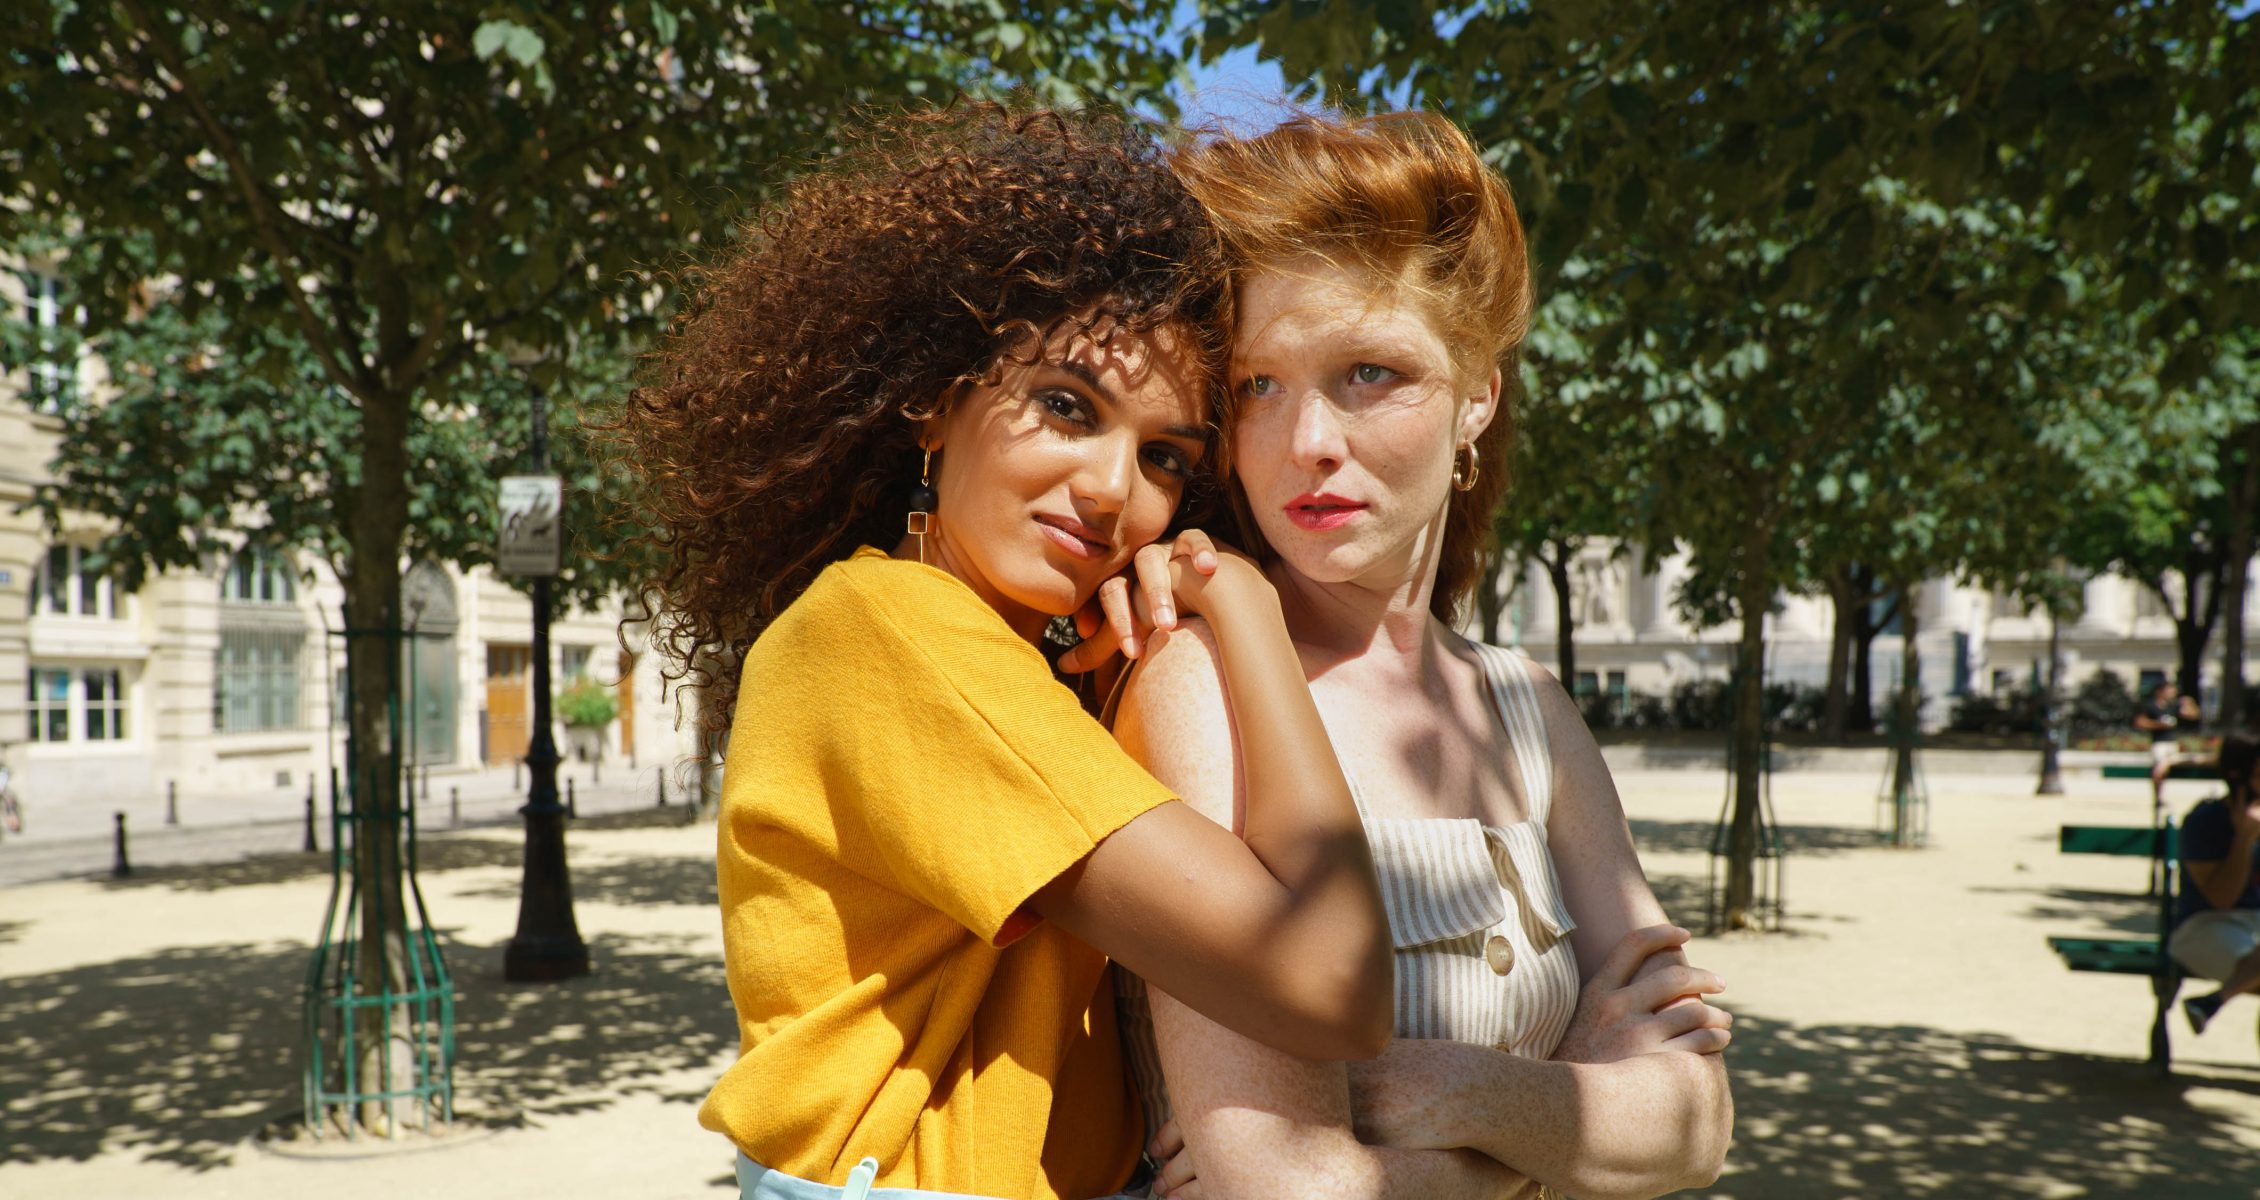 two women in a park in paris, france